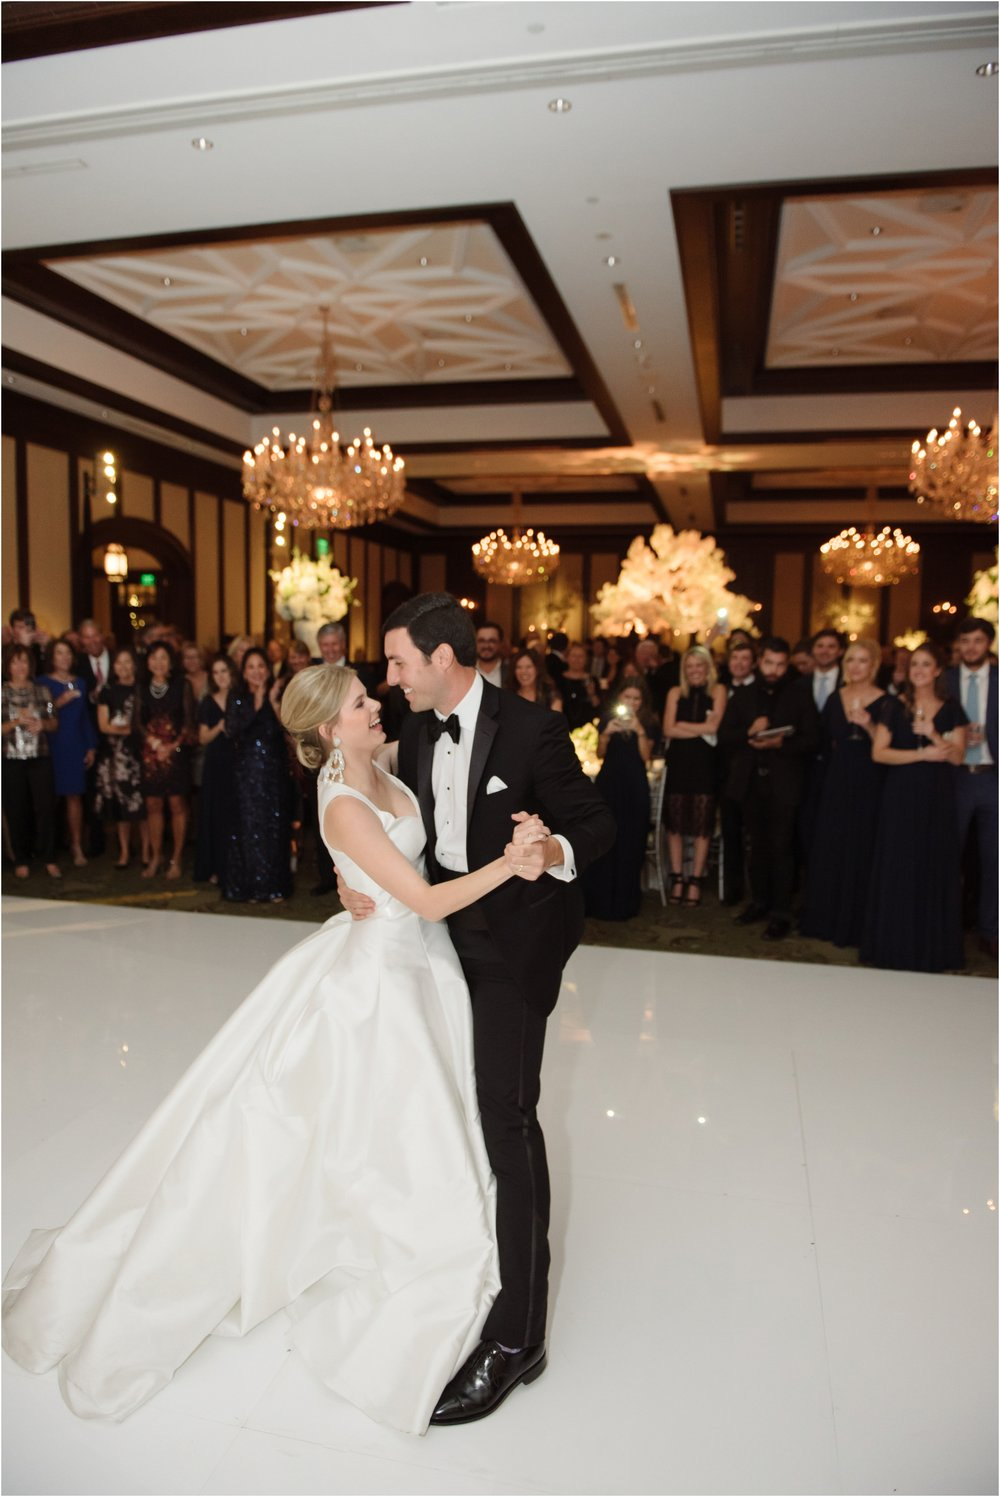 dallasweddingphotographer_DallasCountryClub_Hannah+Matthew_0044.jpg